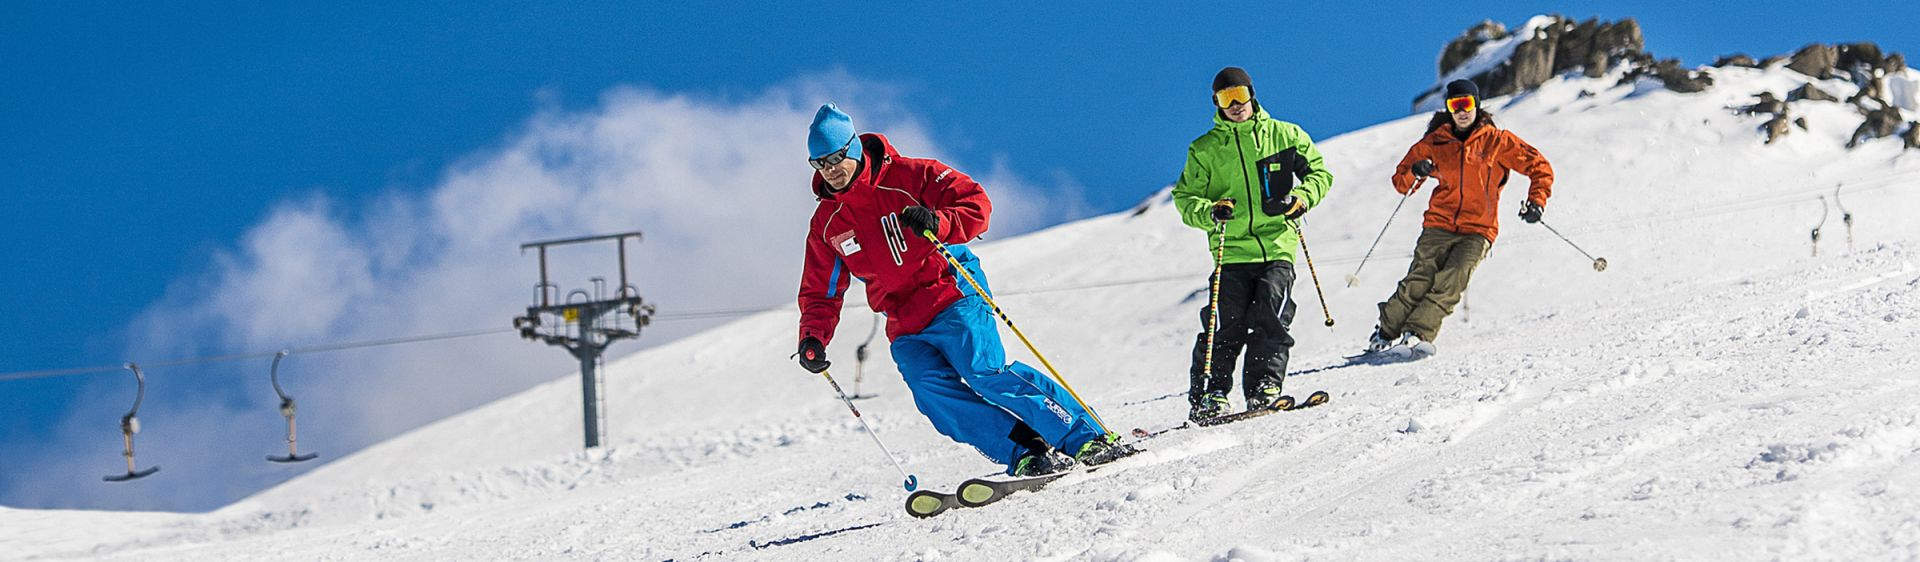 Skiing in Thredbo - Snowy Mountains